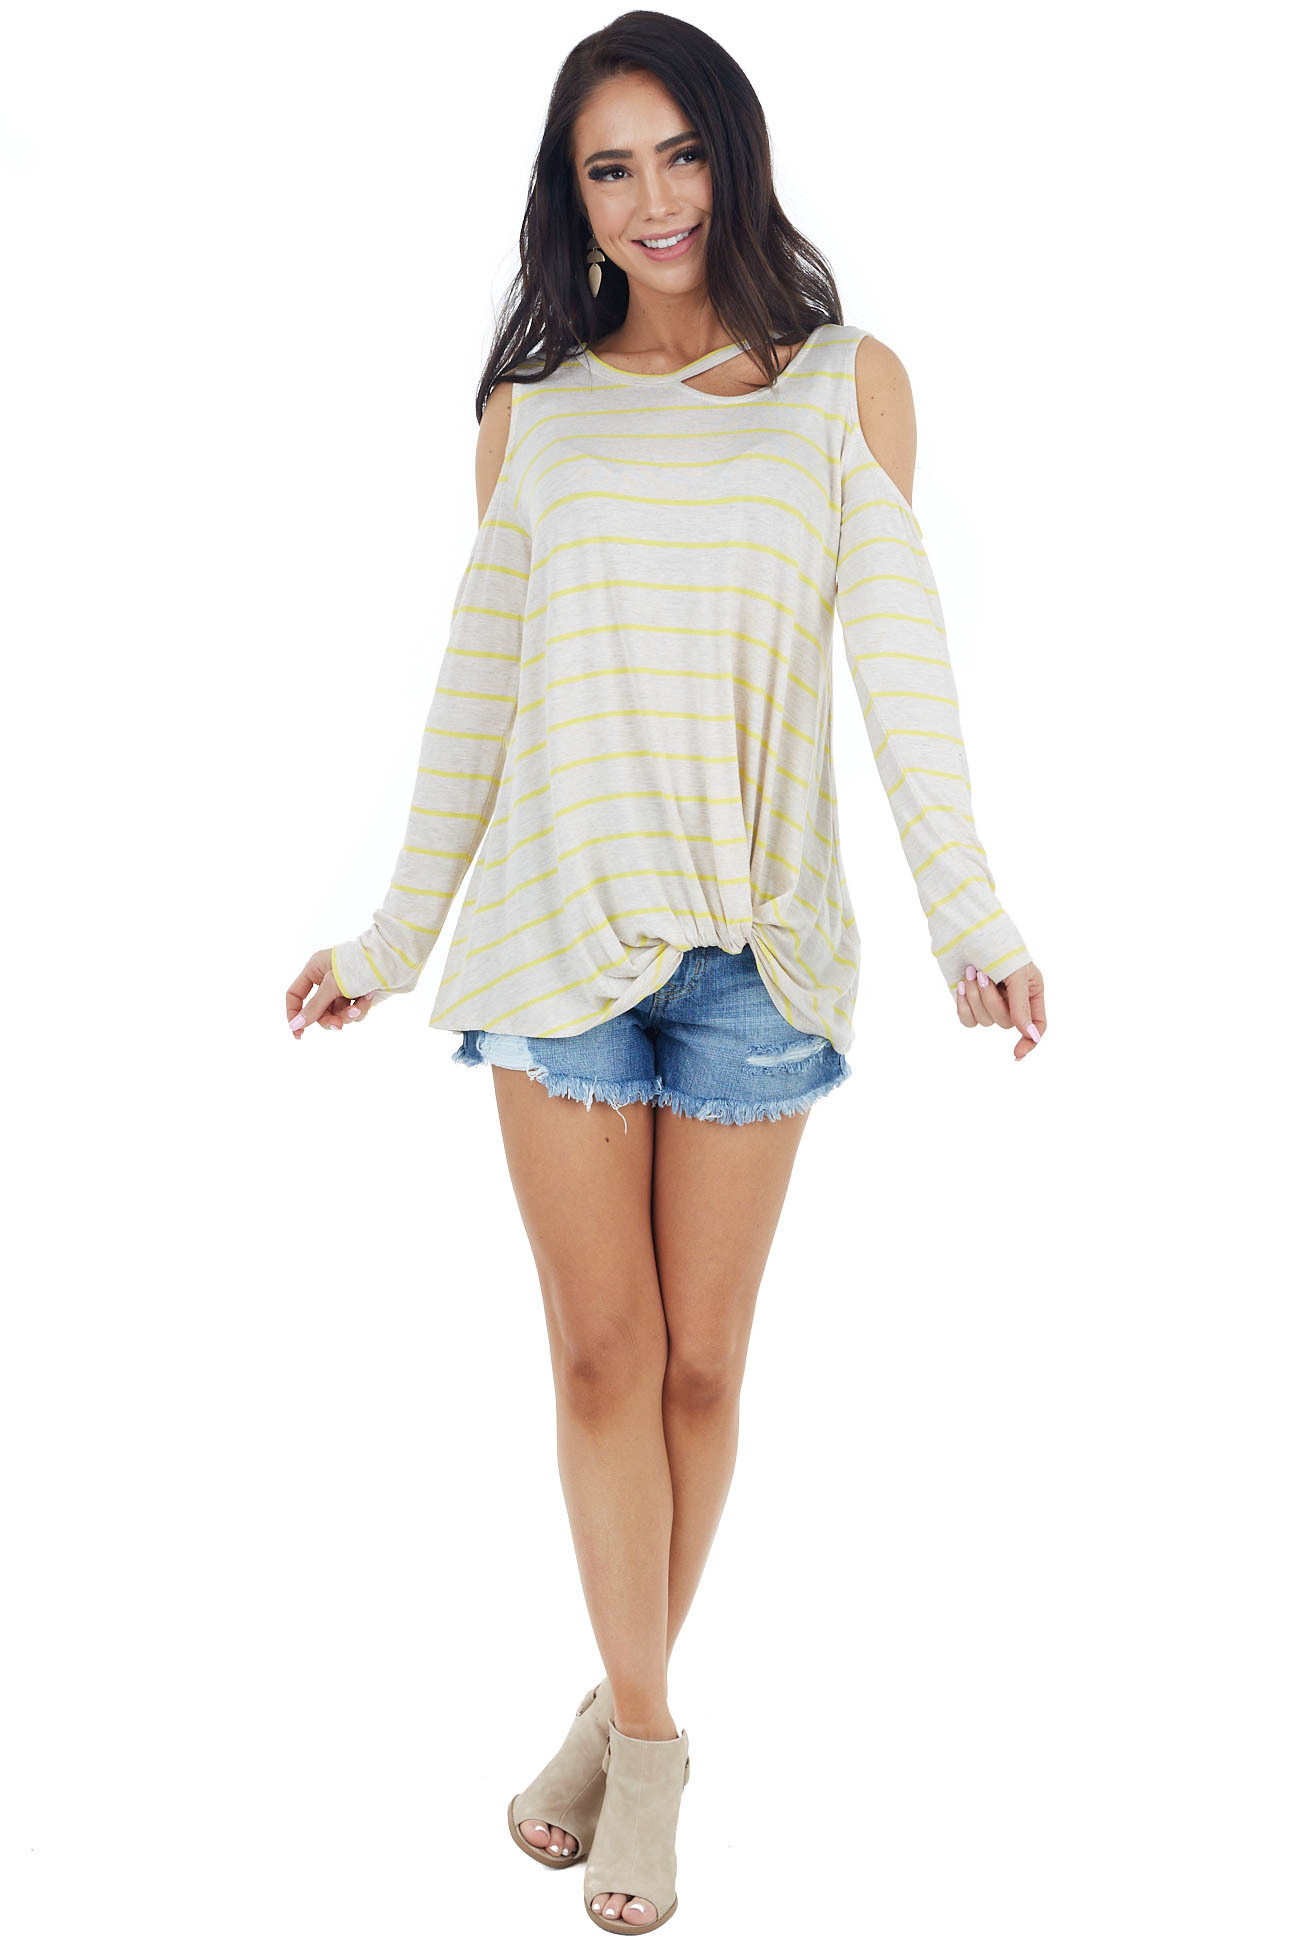 Oatmeal and Lemon Striped Cold Shoulder Top with Cutout Neck